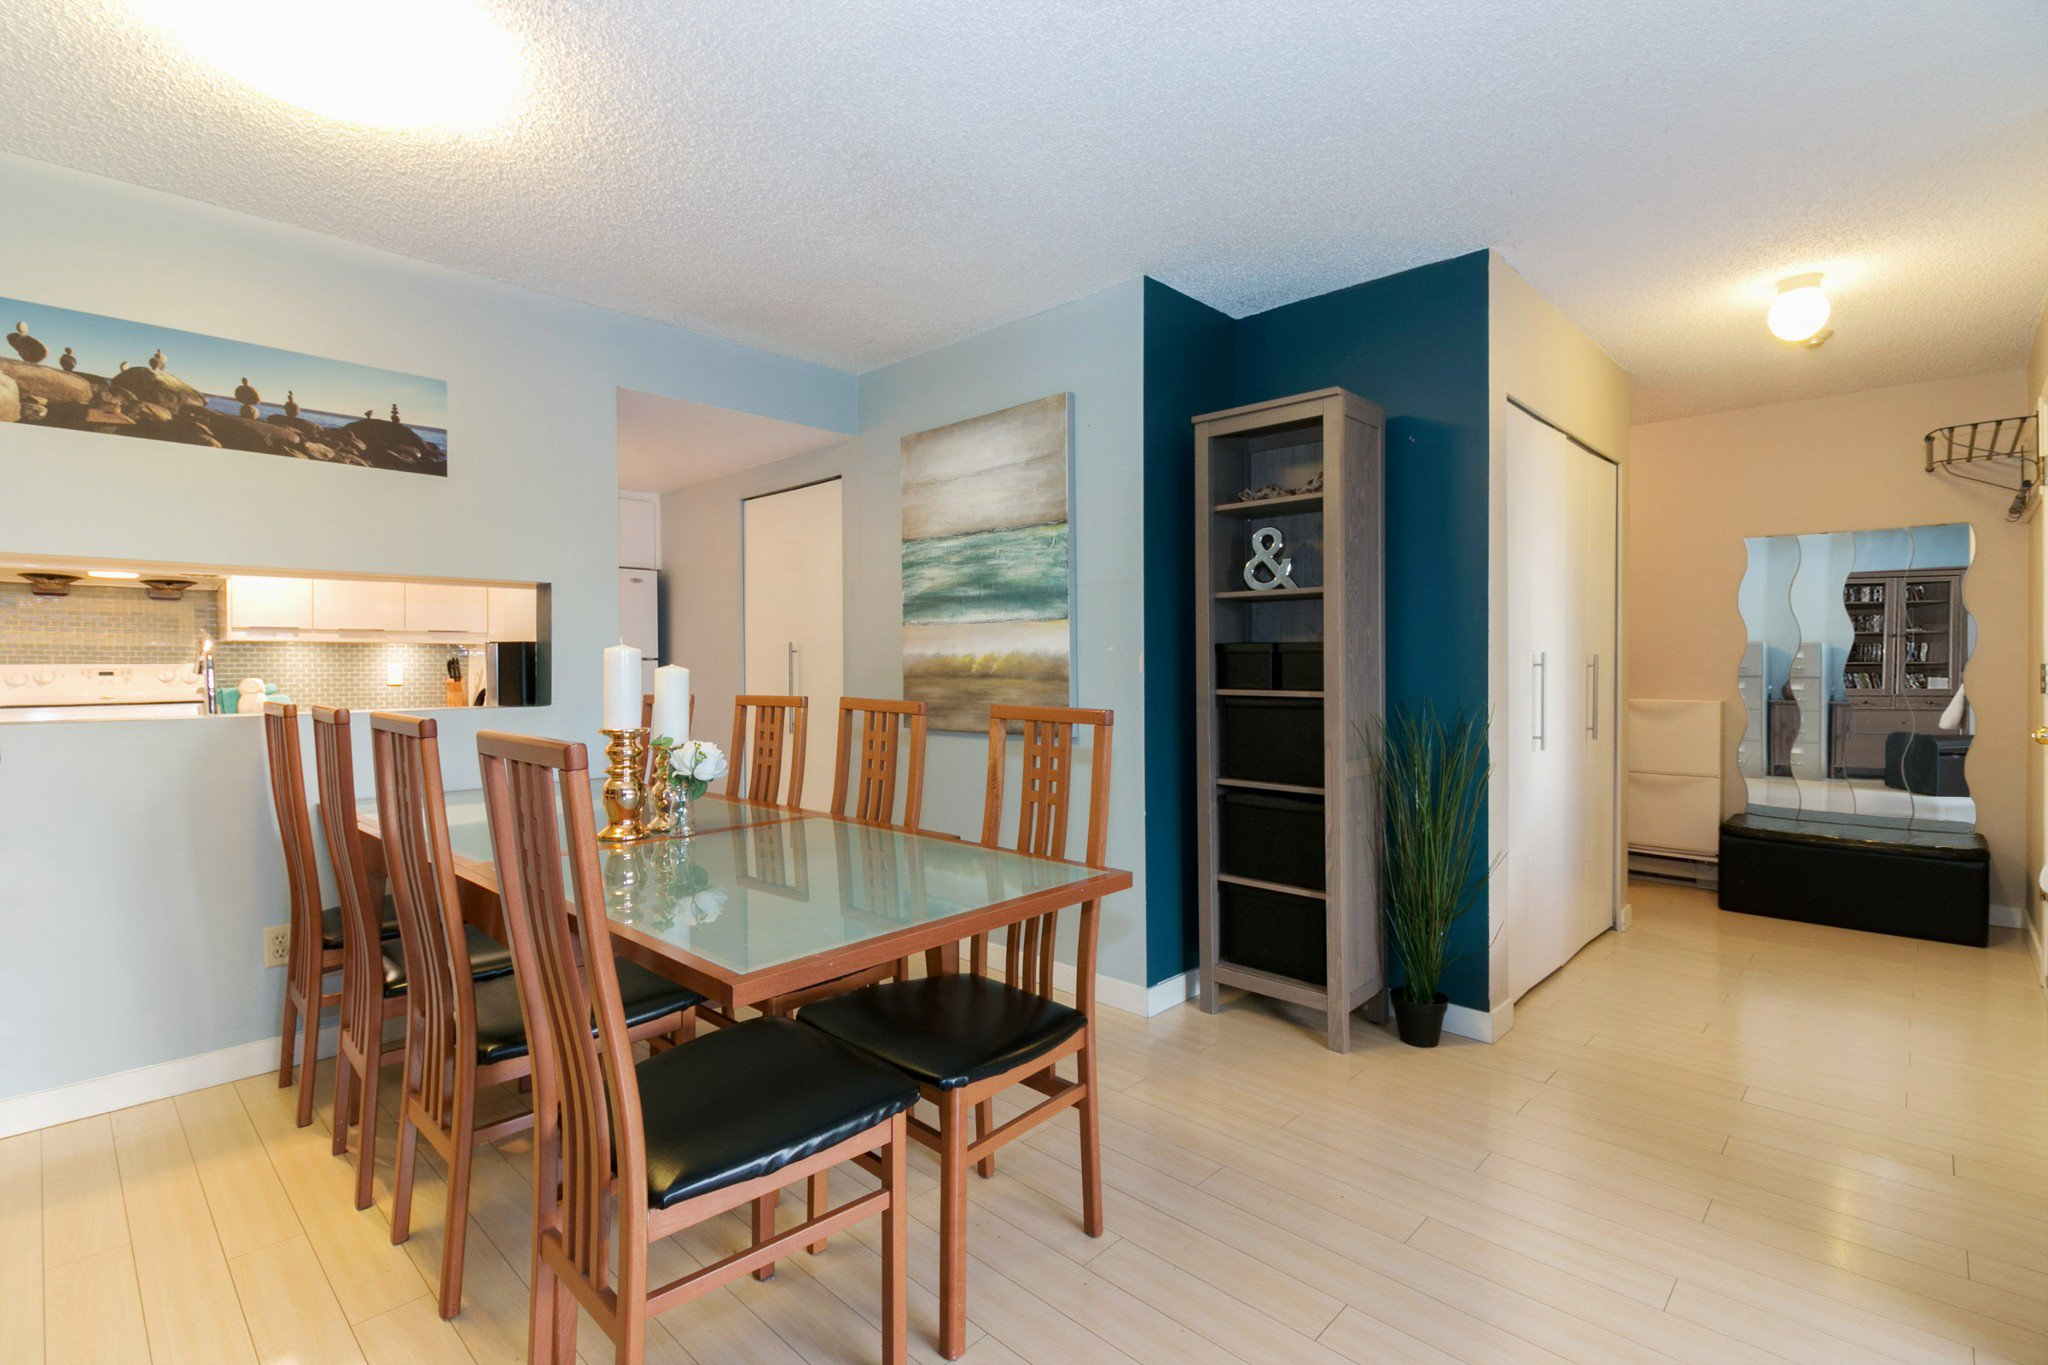 Photo 4: Photos: 10 385 GINGER Drive in New Westminster: Fraserview NW Townhouse for sale : MLS®# R2228232